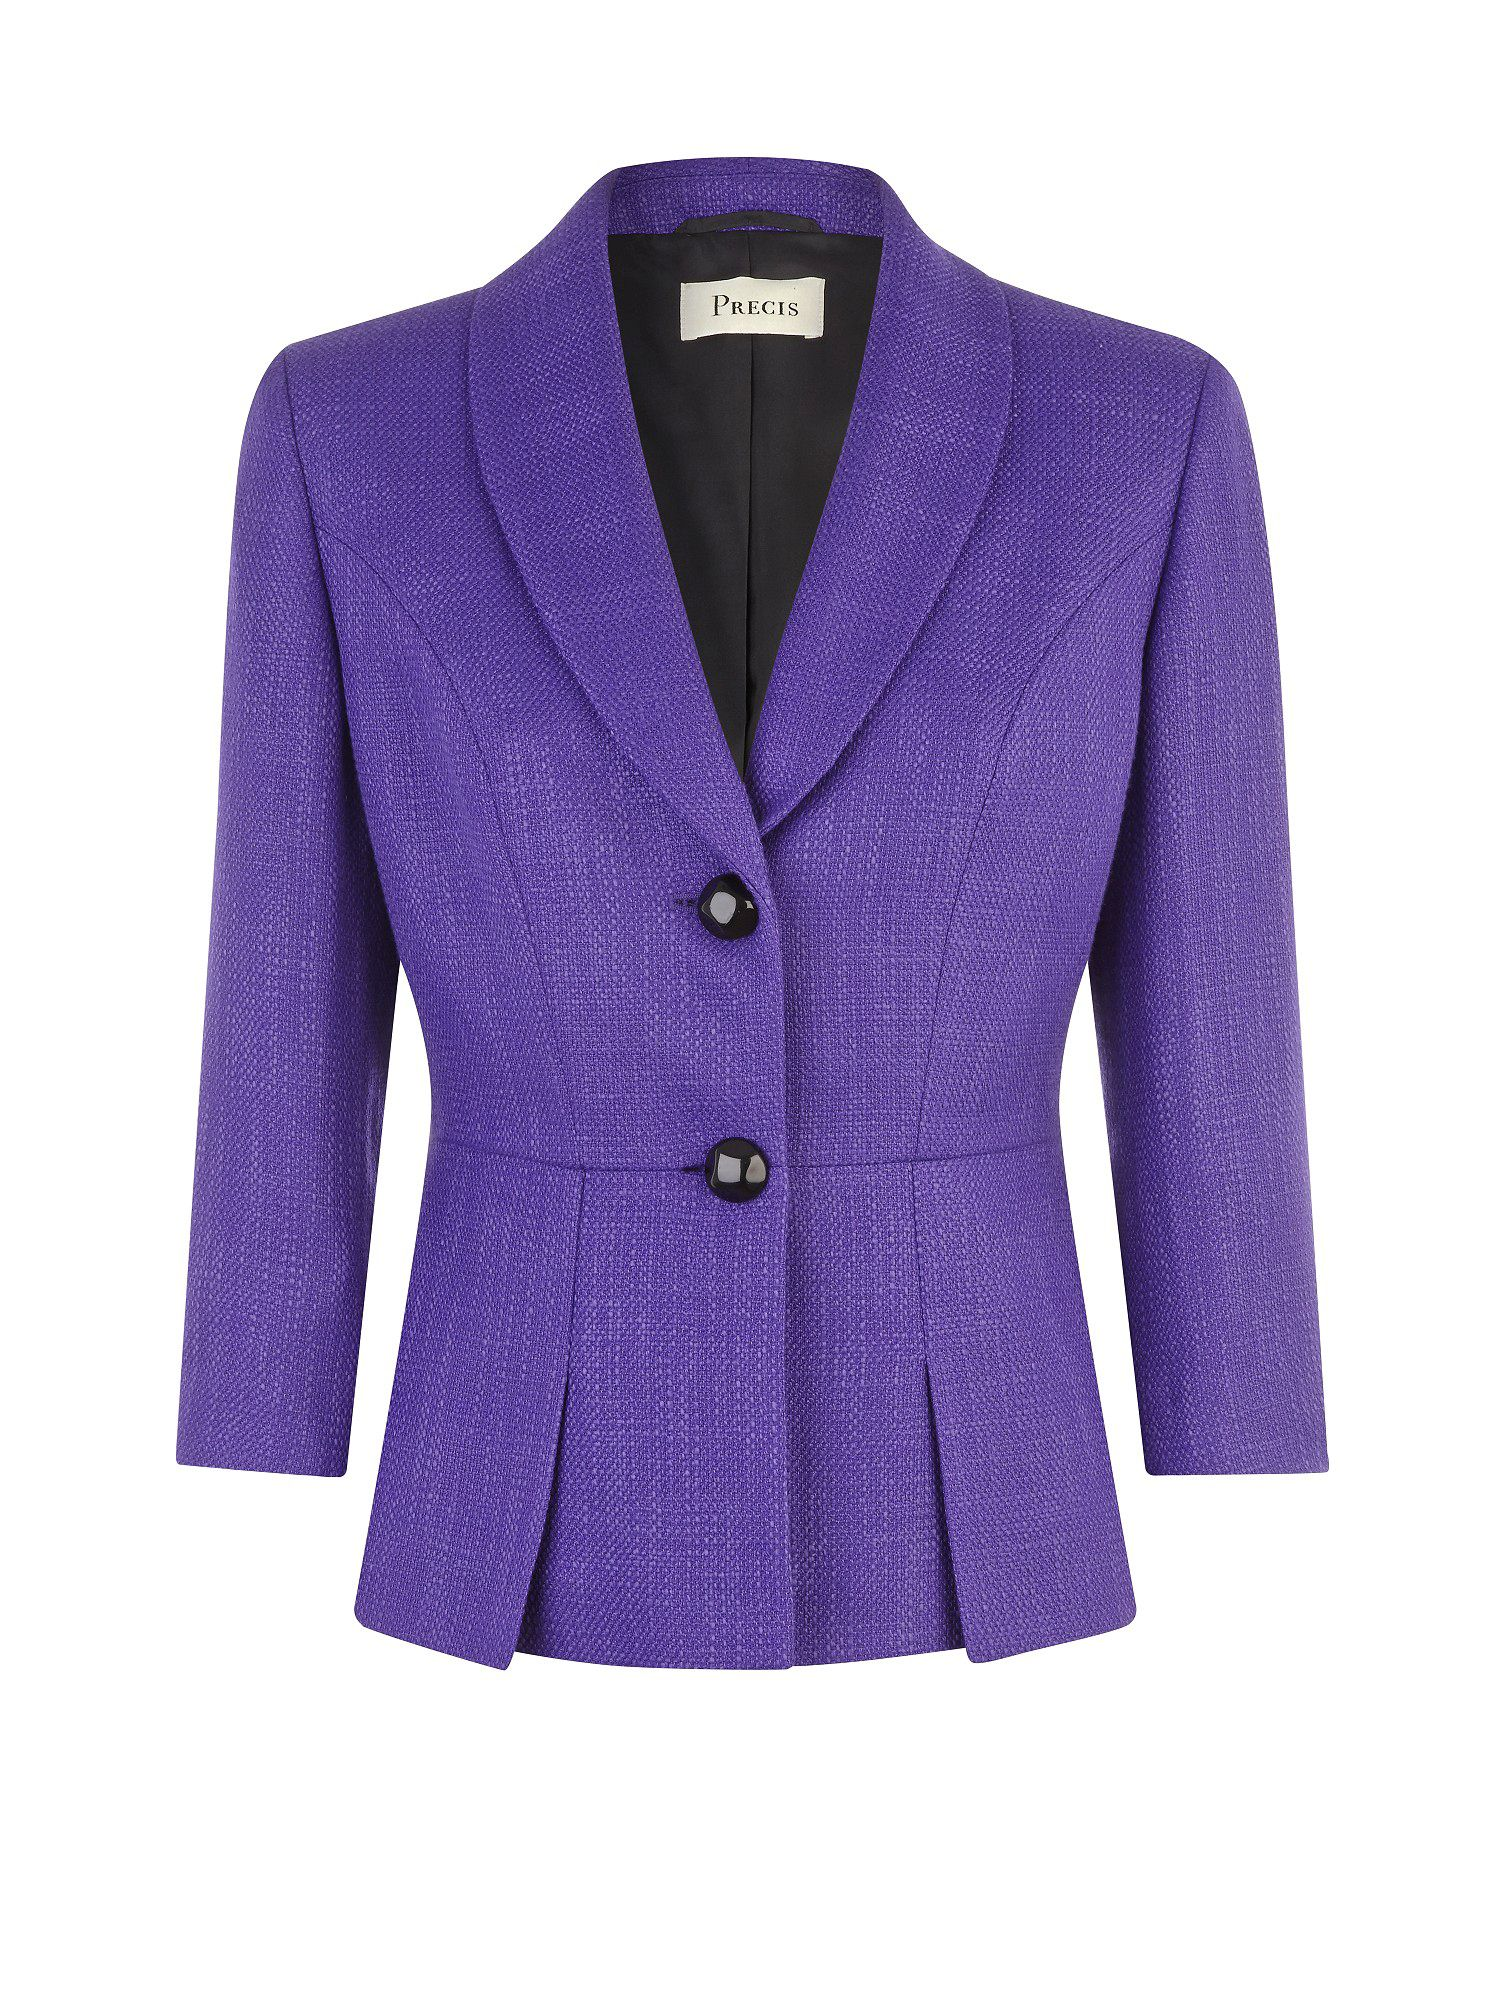 Ultra violet pleat detail jacket